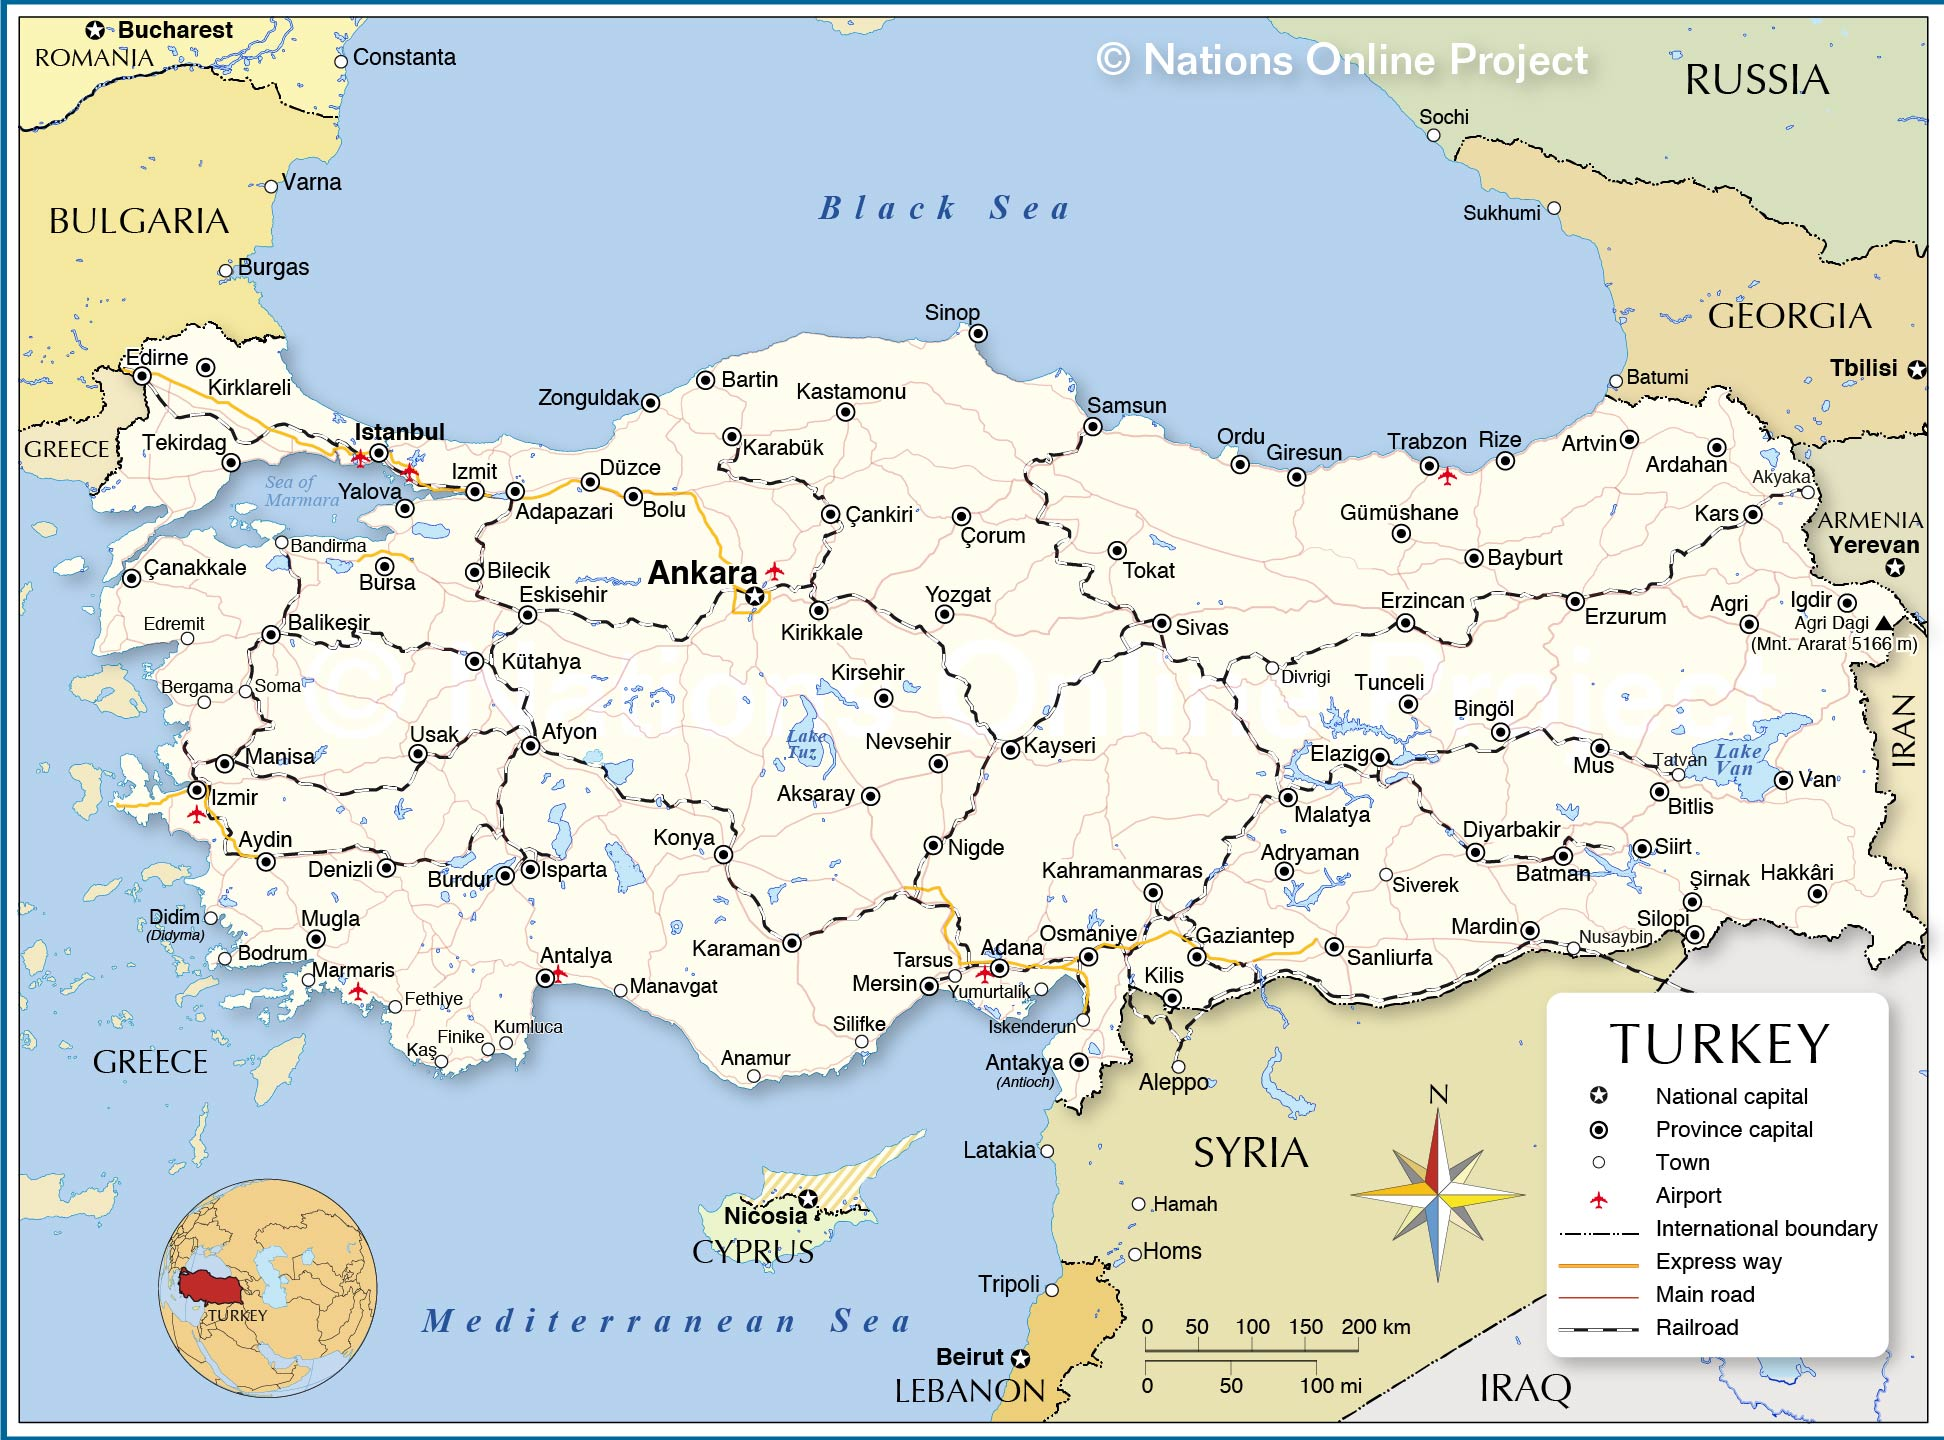 Political Map of Turkey - Nations Online Project